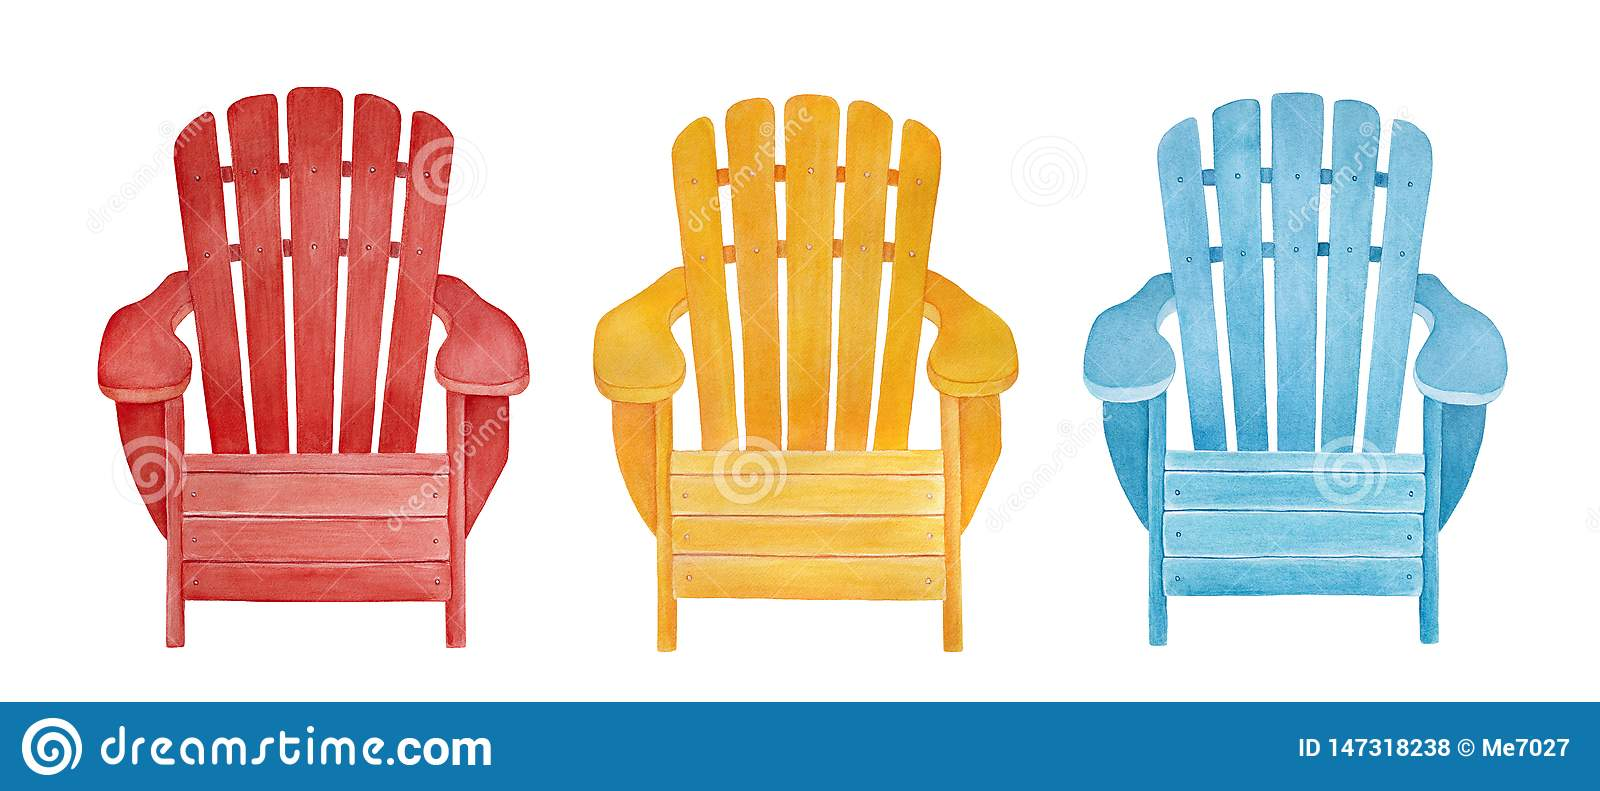 Phenomenal Colorful Outdoor Lounge Chair Collection Stock Illustration Caraccident5 Cool Chair Designs And Ideas Caraccident5Info